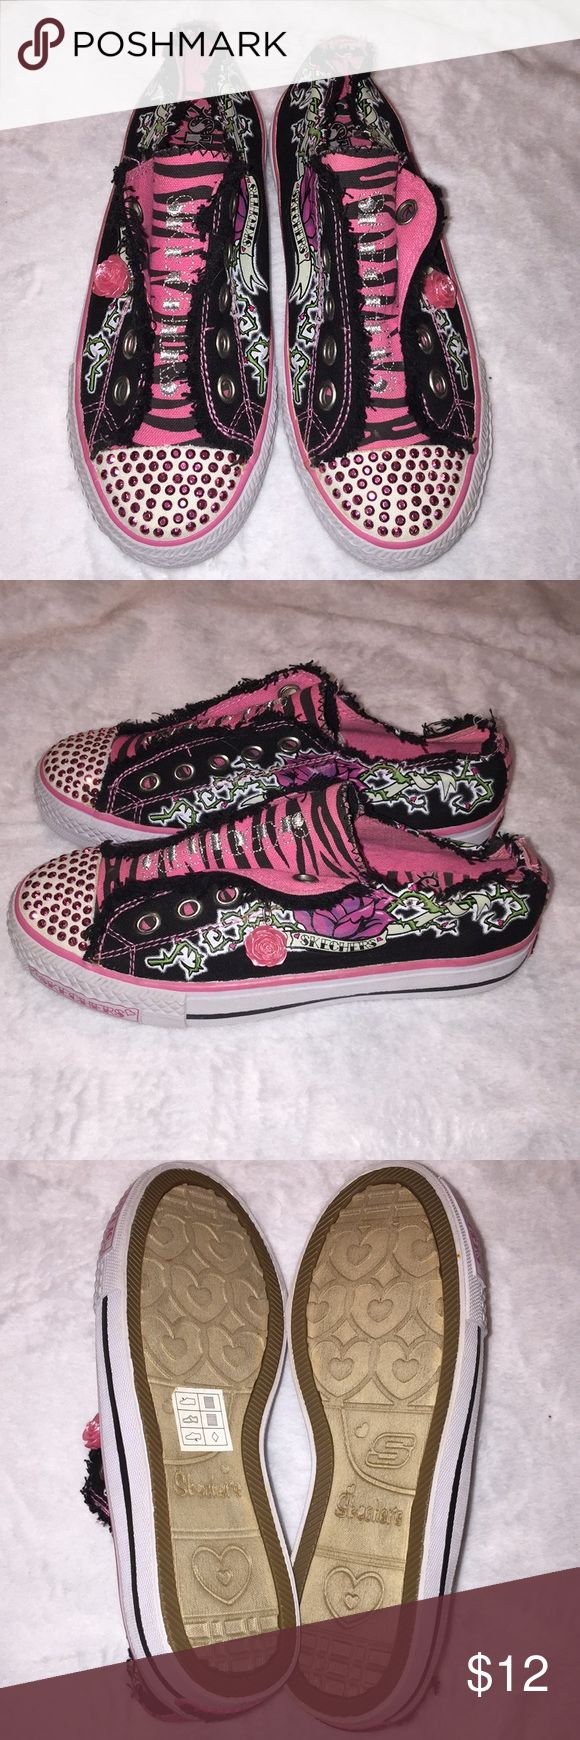 Girls Skechers brand shoes size 2. This is a pair of girls Skechers brand shoes size 2. That have been worn a few times and are in good shape. They are a slip on shoe with a medium width. If you have any questions please let me know. Thanks! Skechers Shoes Sneakers